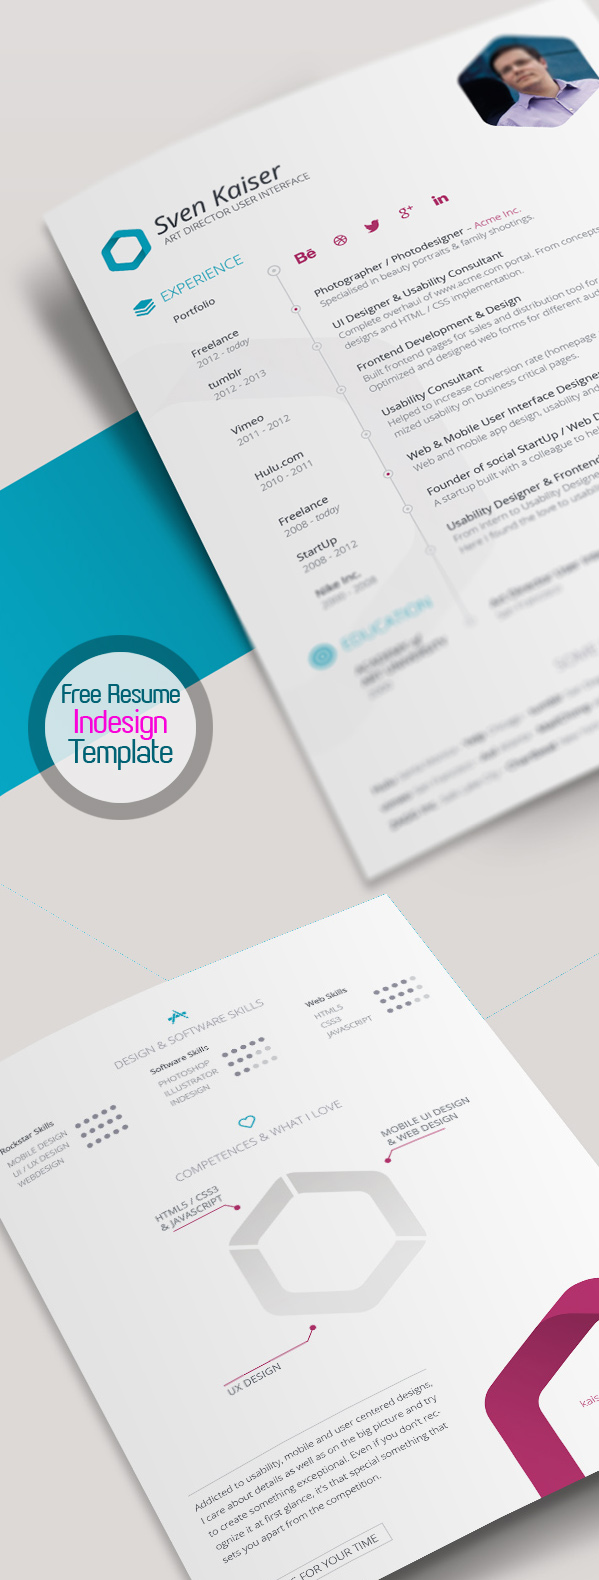 Free Modern Resume Templates & PSD Mockups | Freebies | Graphic ...